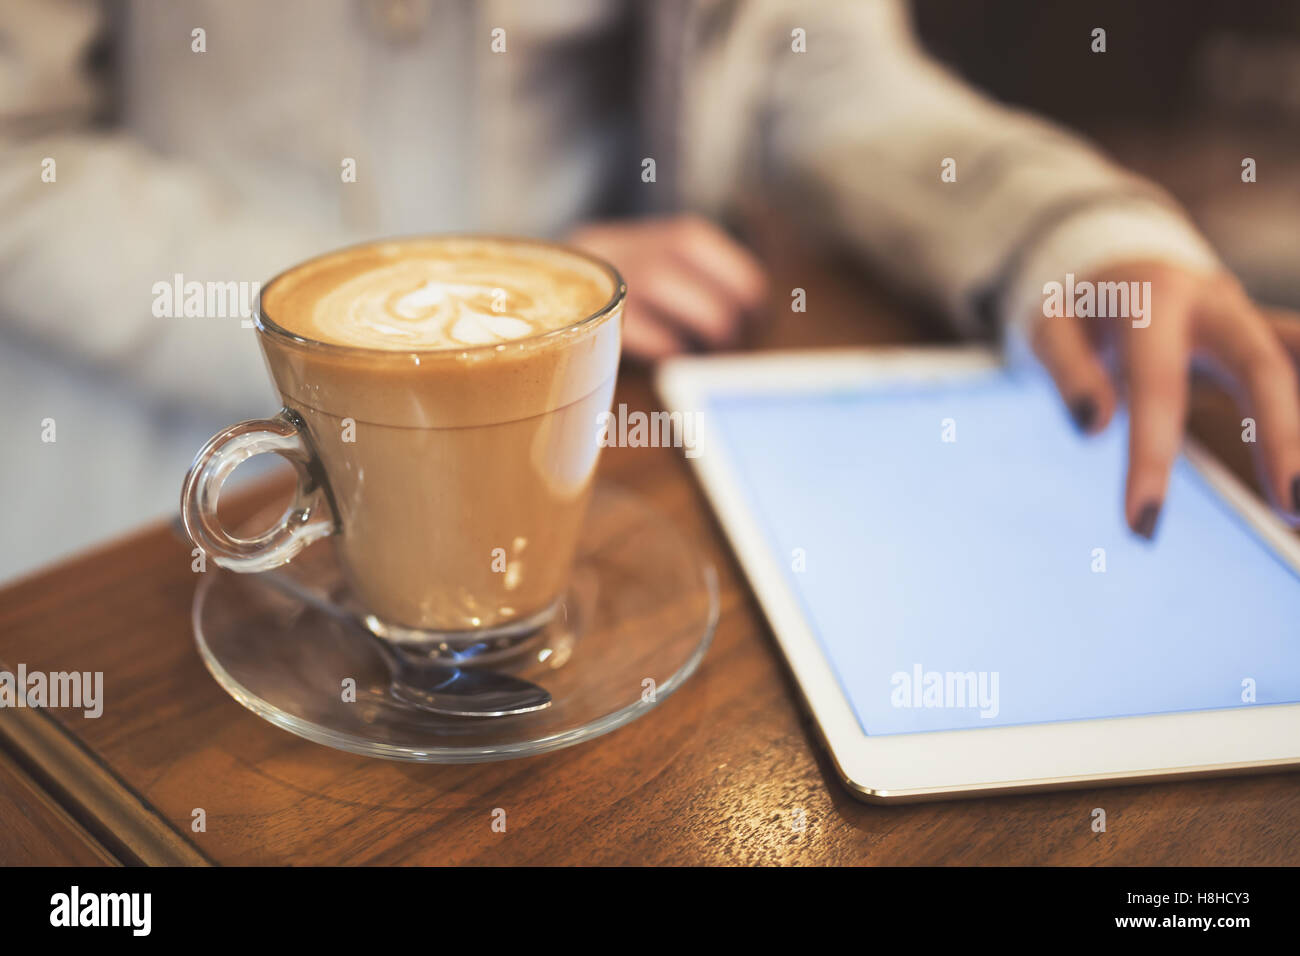 Woman using tablet in restaurant while on coffee break Stock Photo